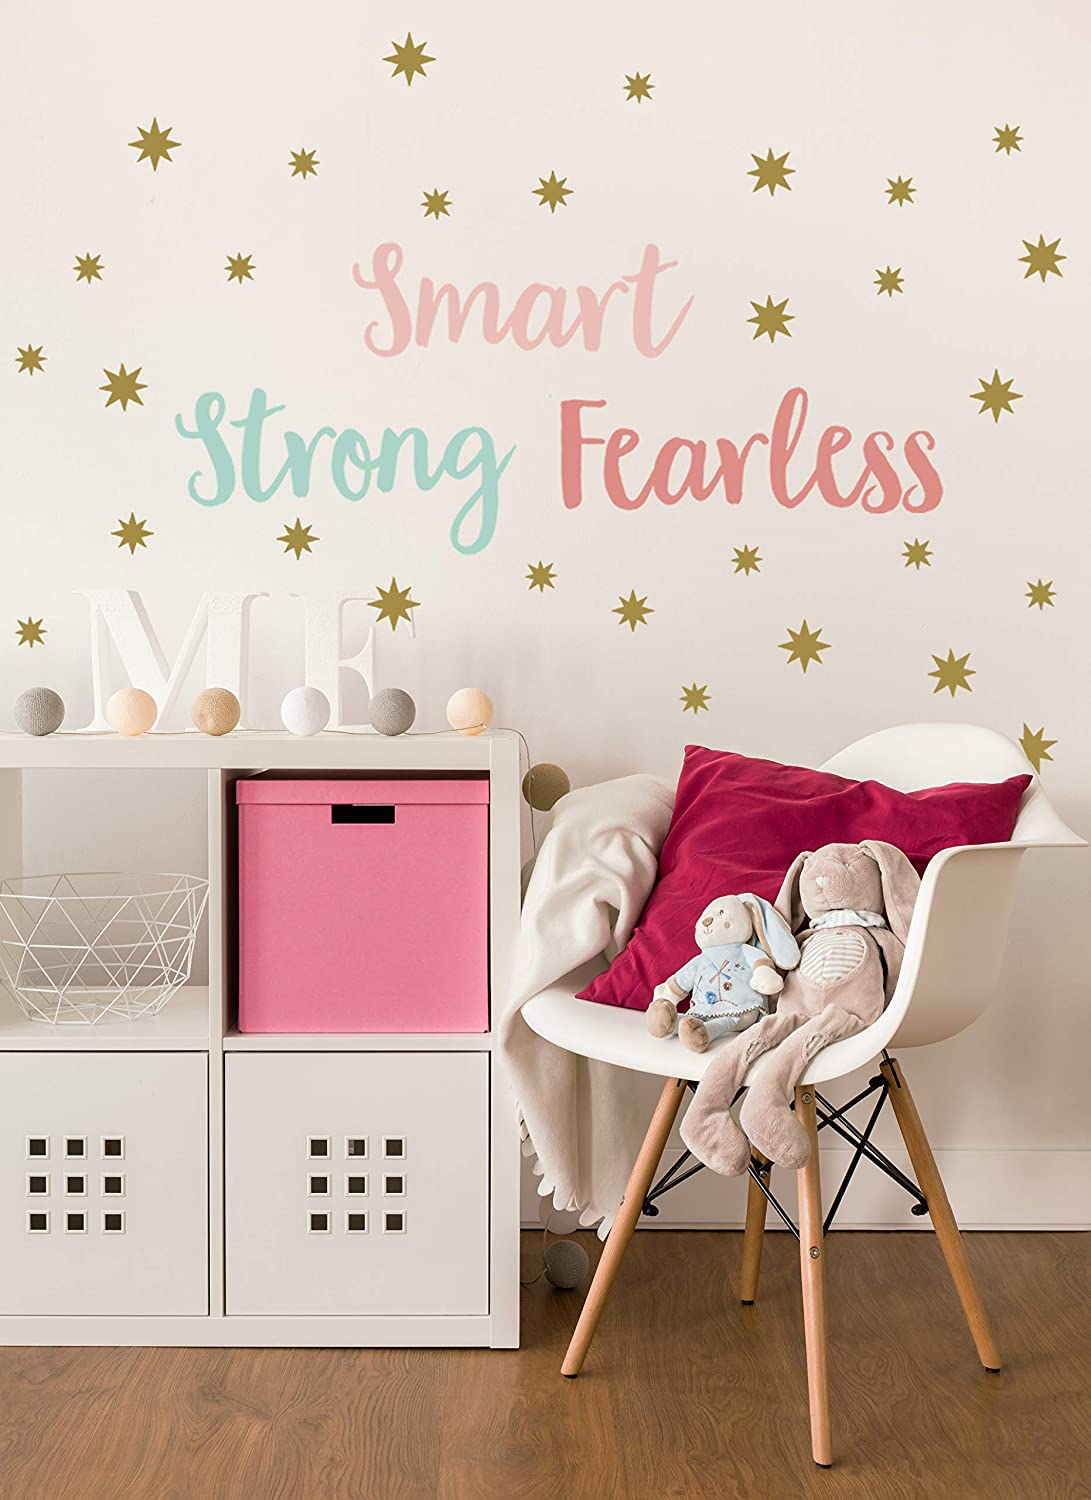 Wall Decal - Wall Decor - Inspirational Quote. - Girls Room Decor - Positive Quote Classroom Decorations - Empowering - - Smart. Strong. Fearless. DIY Decoration.